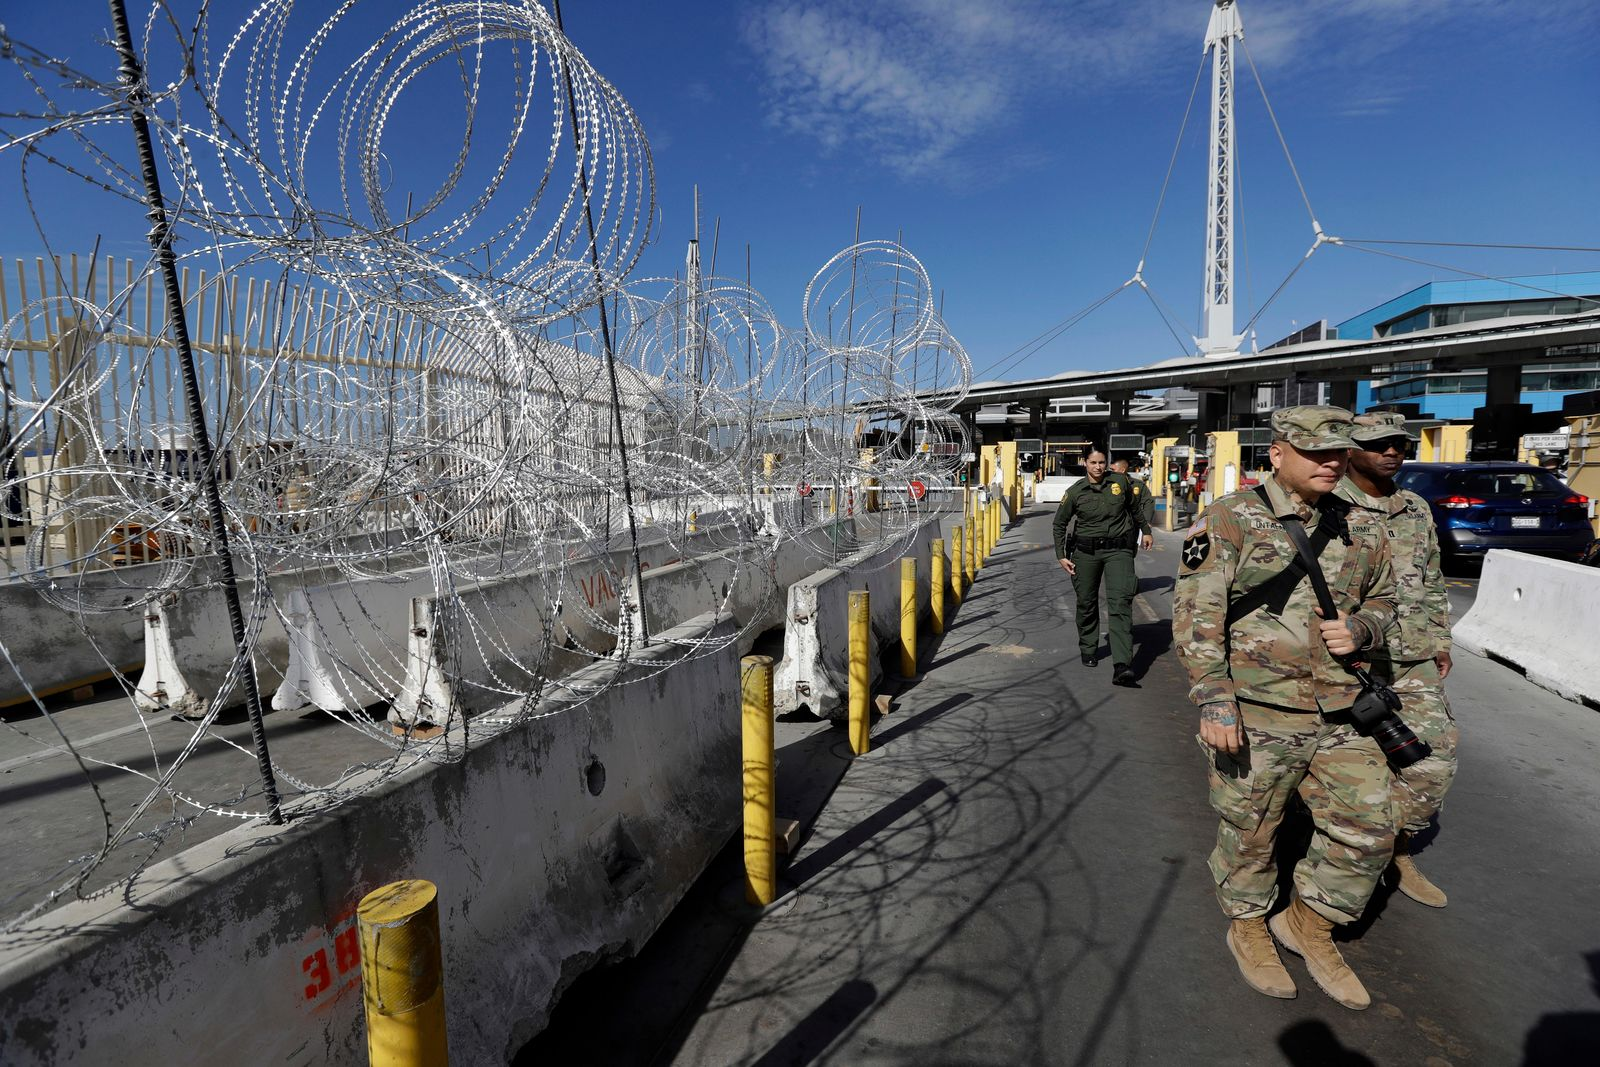 U.S. Border Patrol agents and members of the military pass concertina wire during a tour of the San Ysidro port of entry Friday, Nov. 16, 2018, in San Diego. As thousands of migrants in a caravan of Central American asylum-seekers converge on the doorstep of the United States, what they won't find are armed American soldiers standing guard. Instead they will see cranes installing towering panels of metal bars and troops wrapping concertina wire around barriers while military helicopters fly overhead. (AP Photo/Gregory Bull)